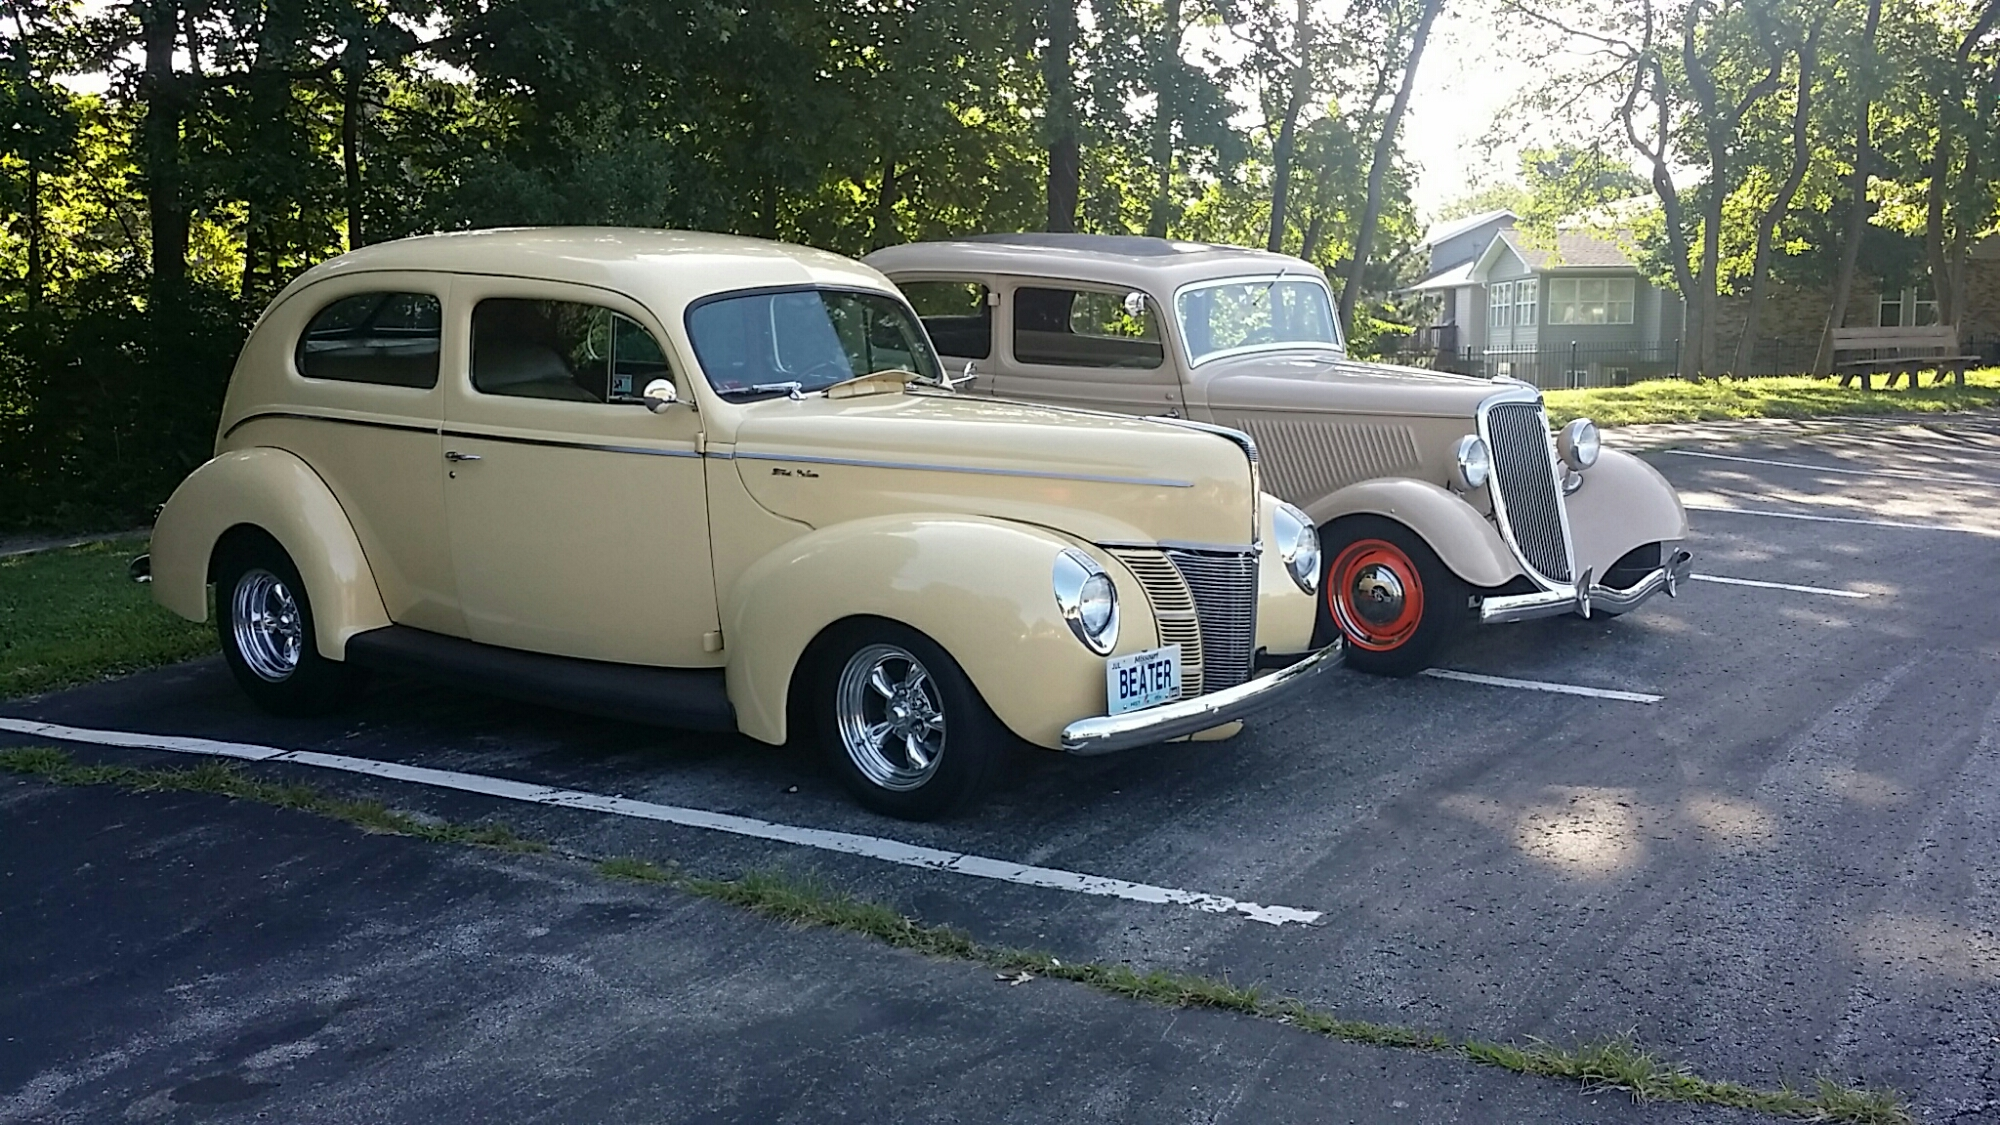 Randy Meierhoffer built Dad's '34 back in the '60's.  Here's Randy's '40 Deluxe Sedan parked next to the '34.